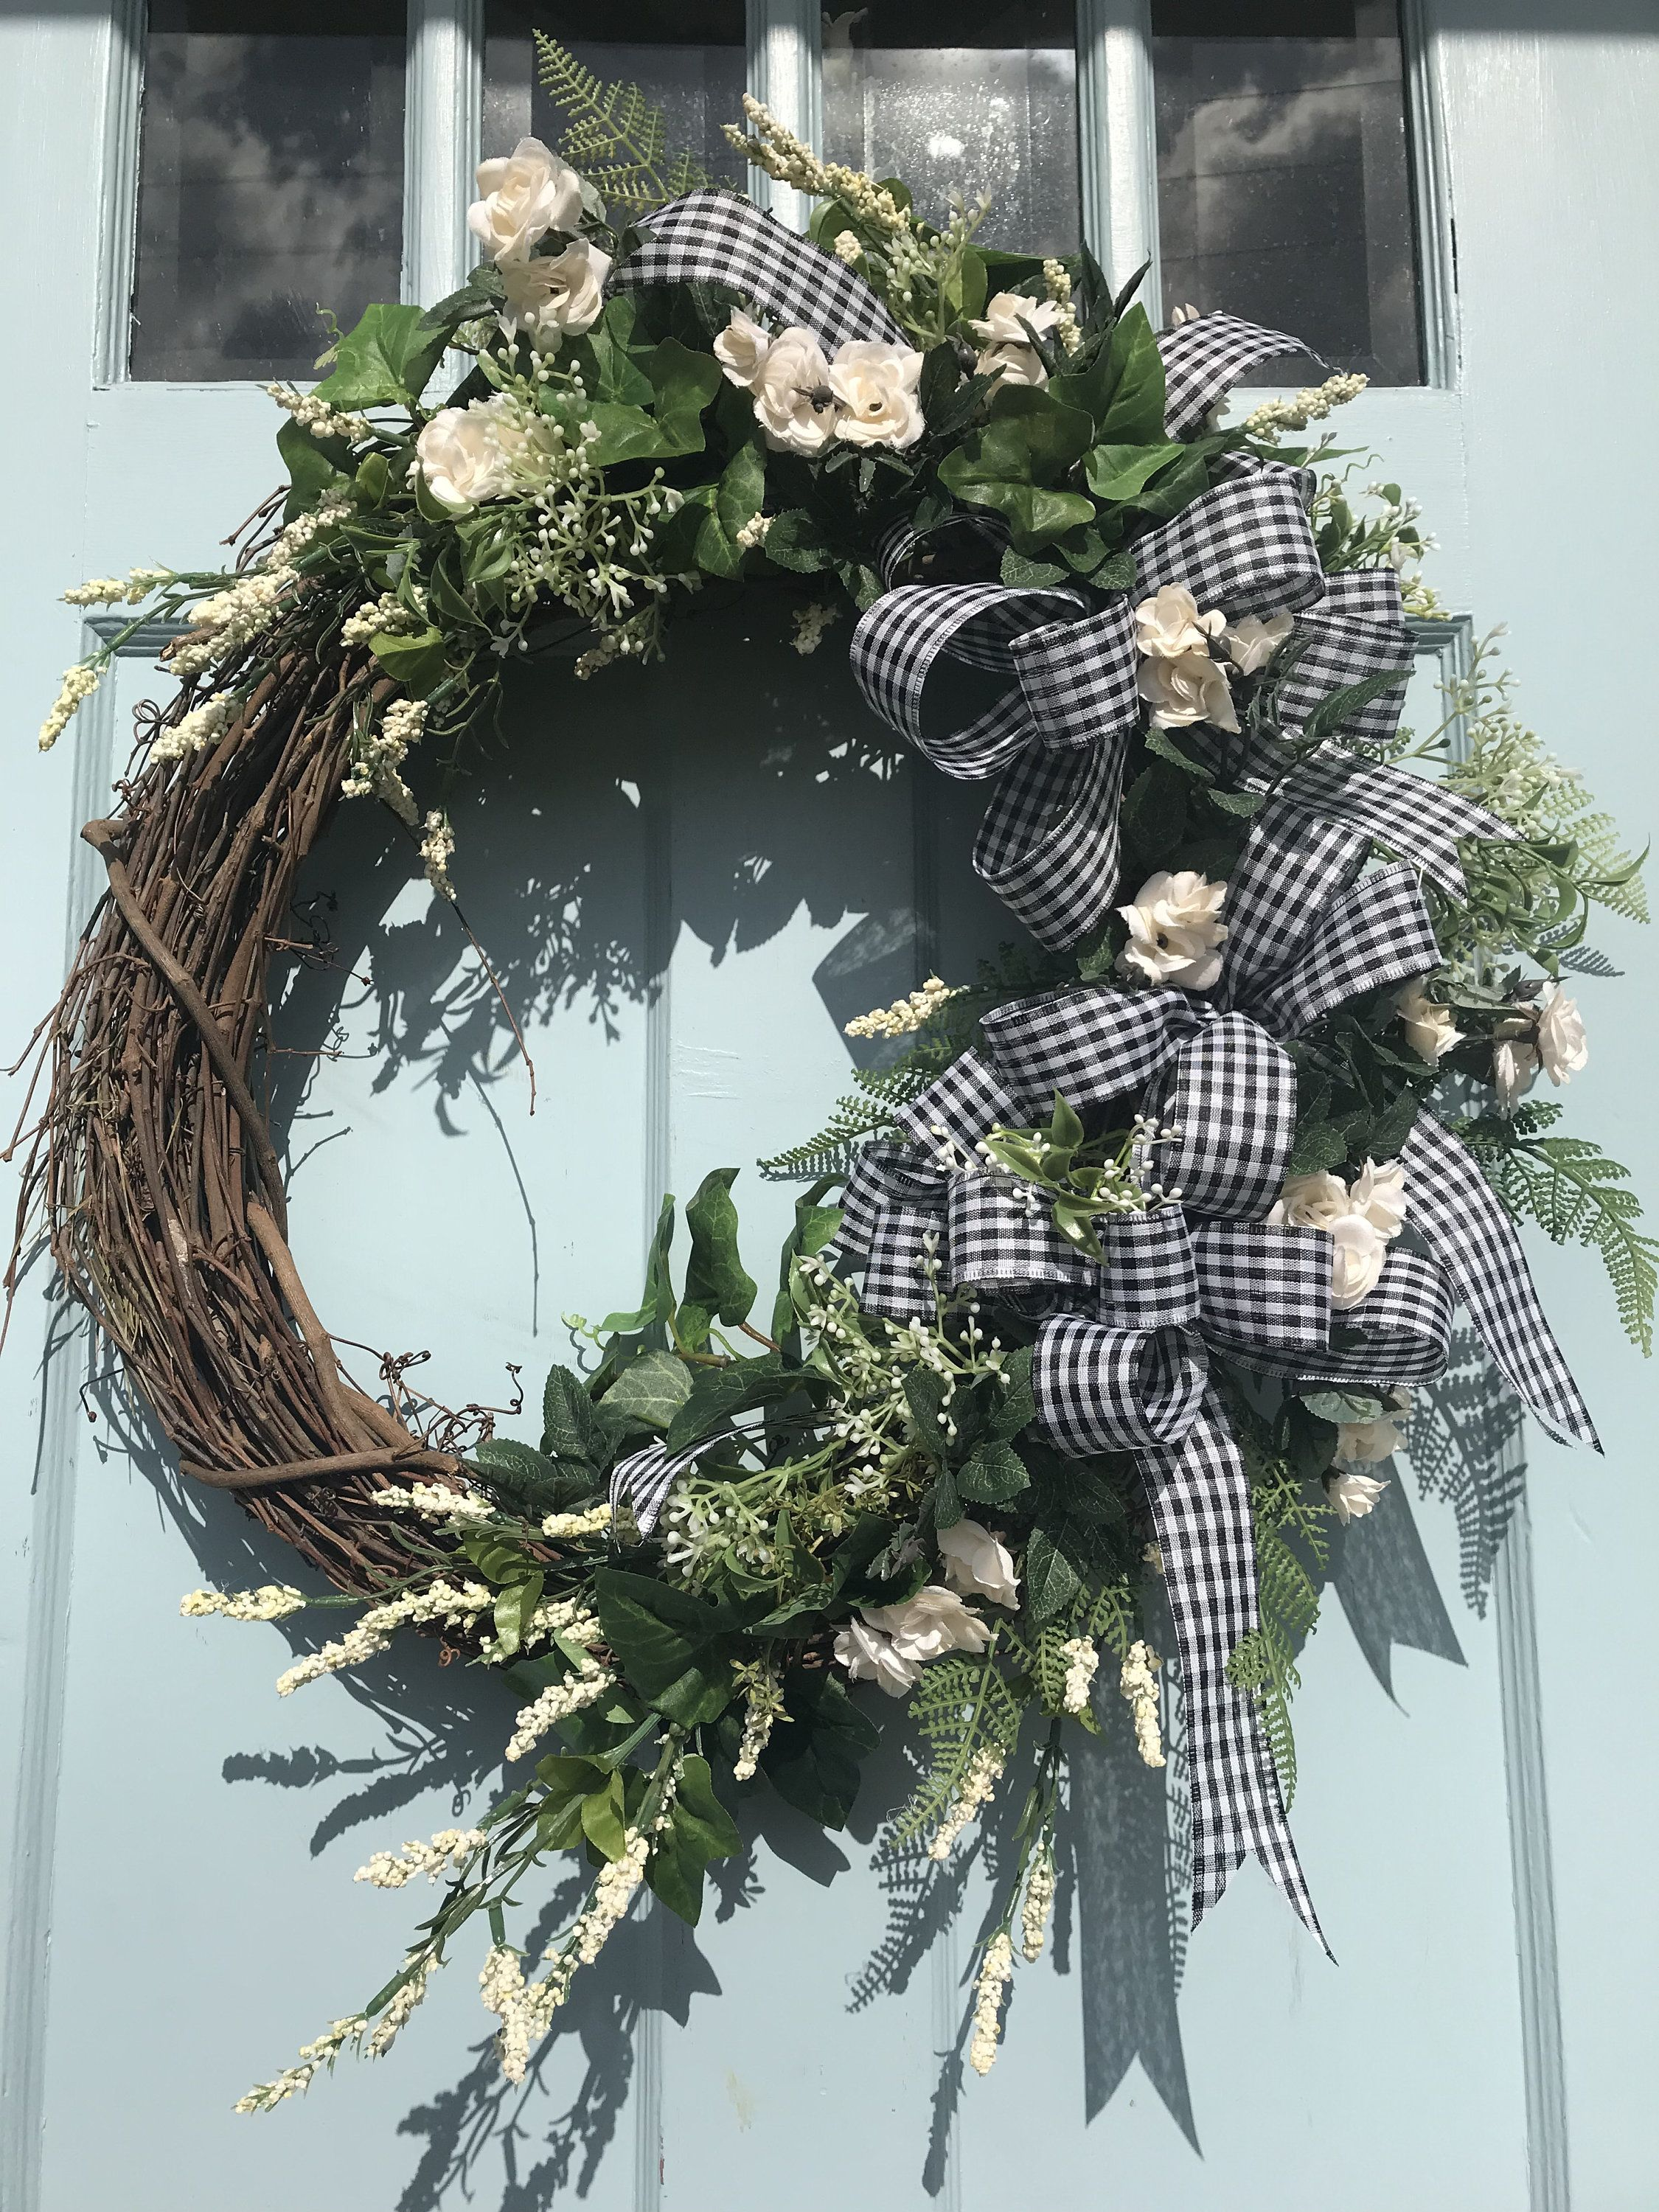 Beautifully Elegant White Floral Grapevine Wreath For Door Wreaths Wreaths For Front Door Farmhouse Christmas Floral Grapevine Wreaths For Front Door Grapevine Wreath